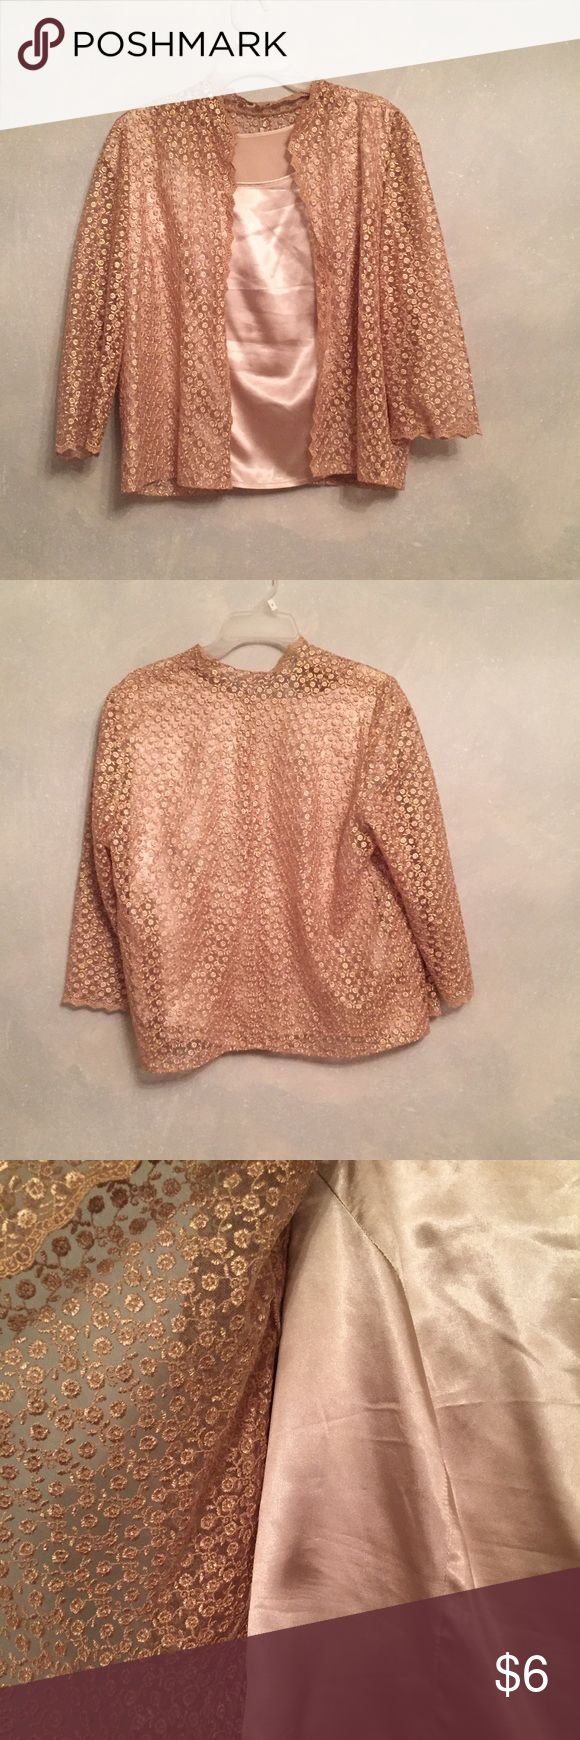 Gold cardigan with matching tank top In perfect condition. The size tag has been cut off but it is a size medium. Sweaters Cardigans